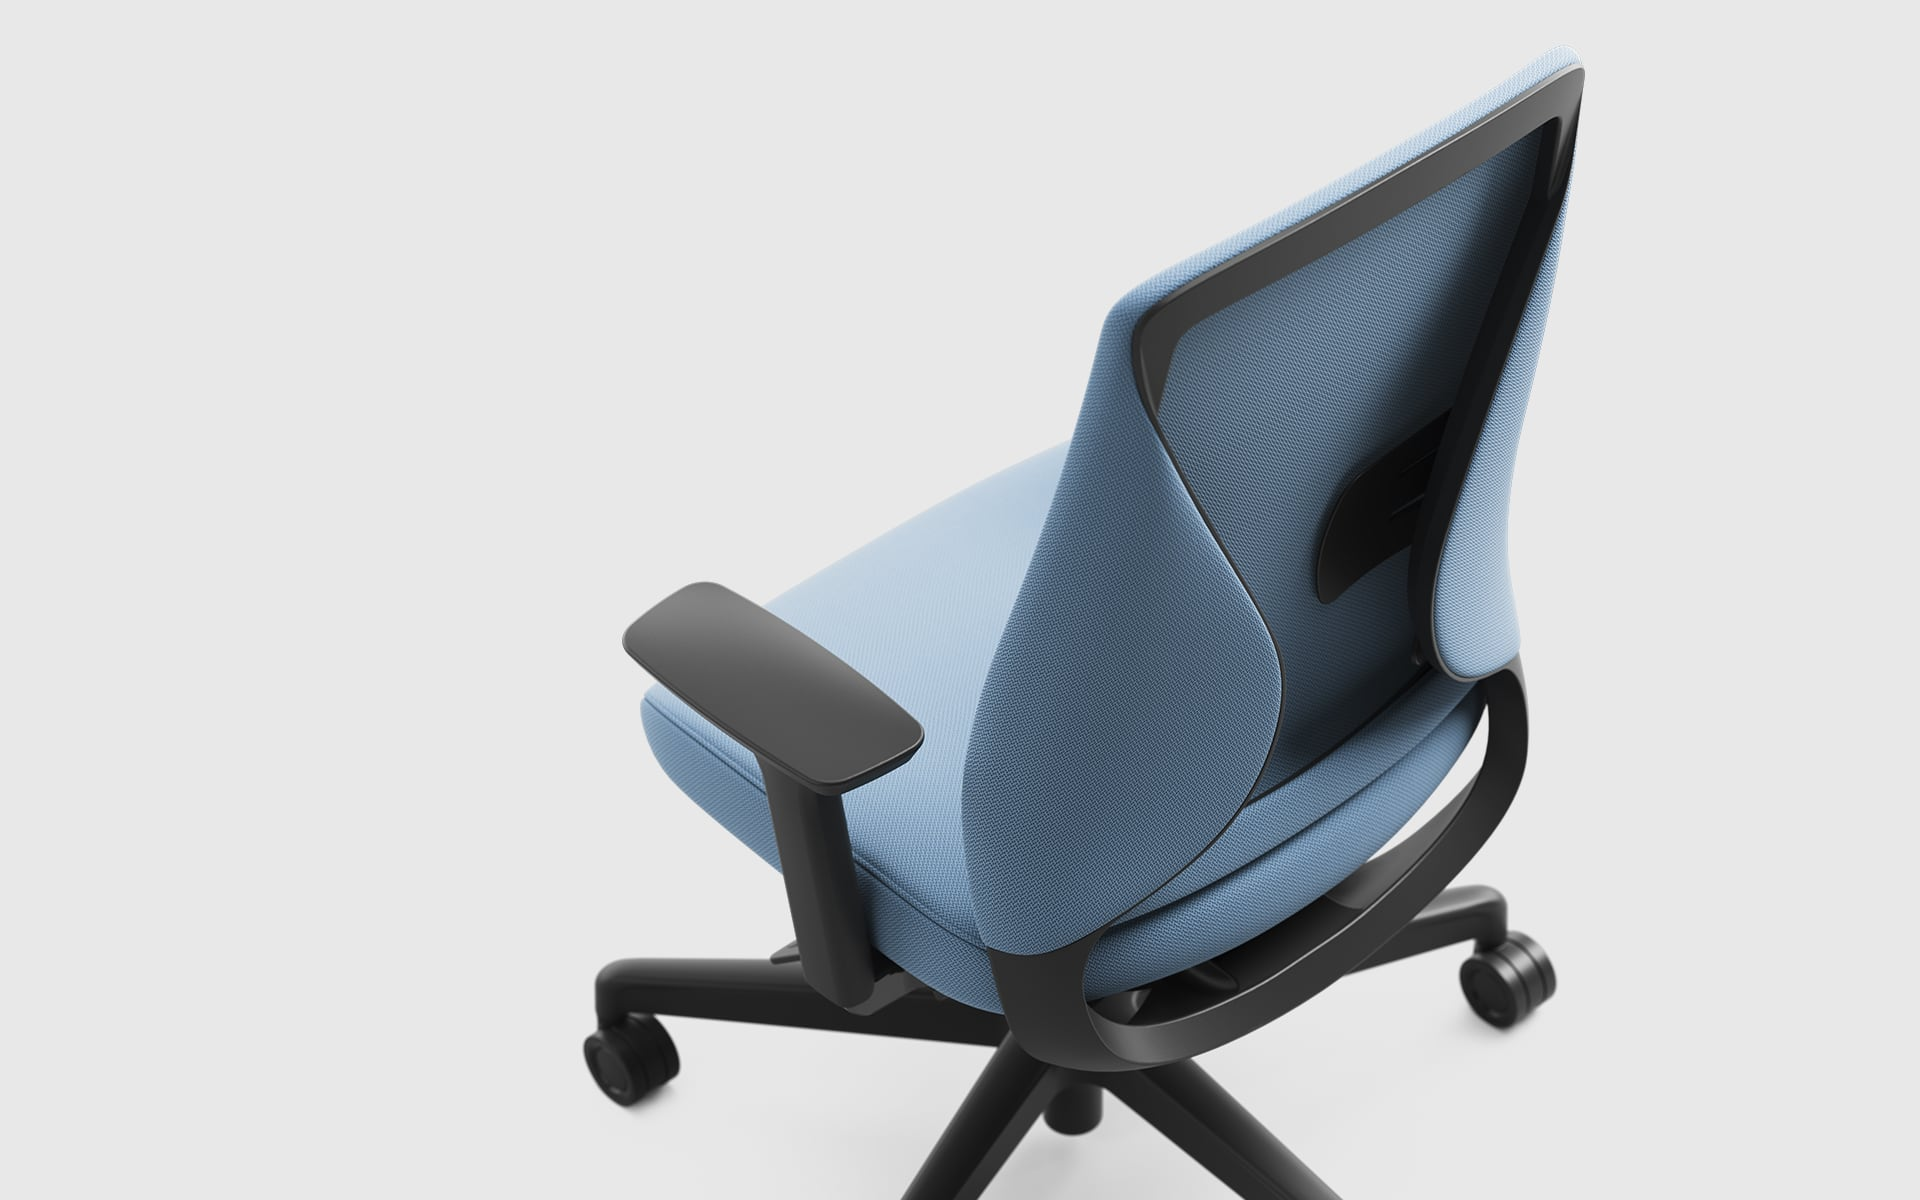 Bird's eye perspective on the Comfordy Silhouette Office chair by ITO Design with light blue upholstery